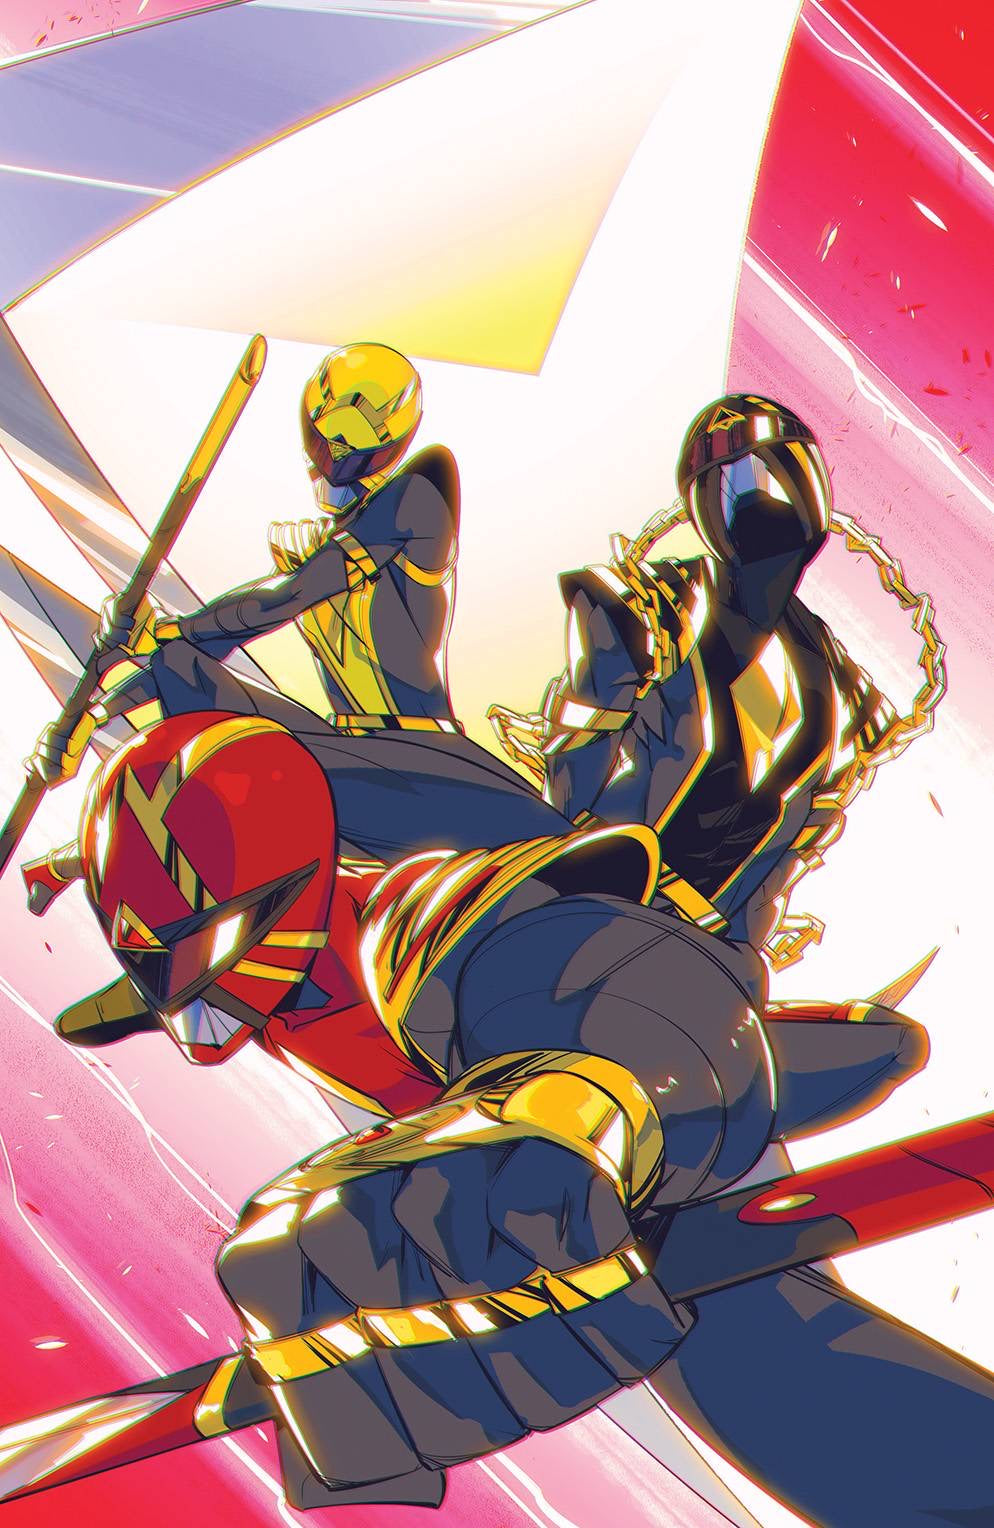 POWER RANGERS #1 1:50 Daniele Di Nicuolo Ratio Incentive Variant